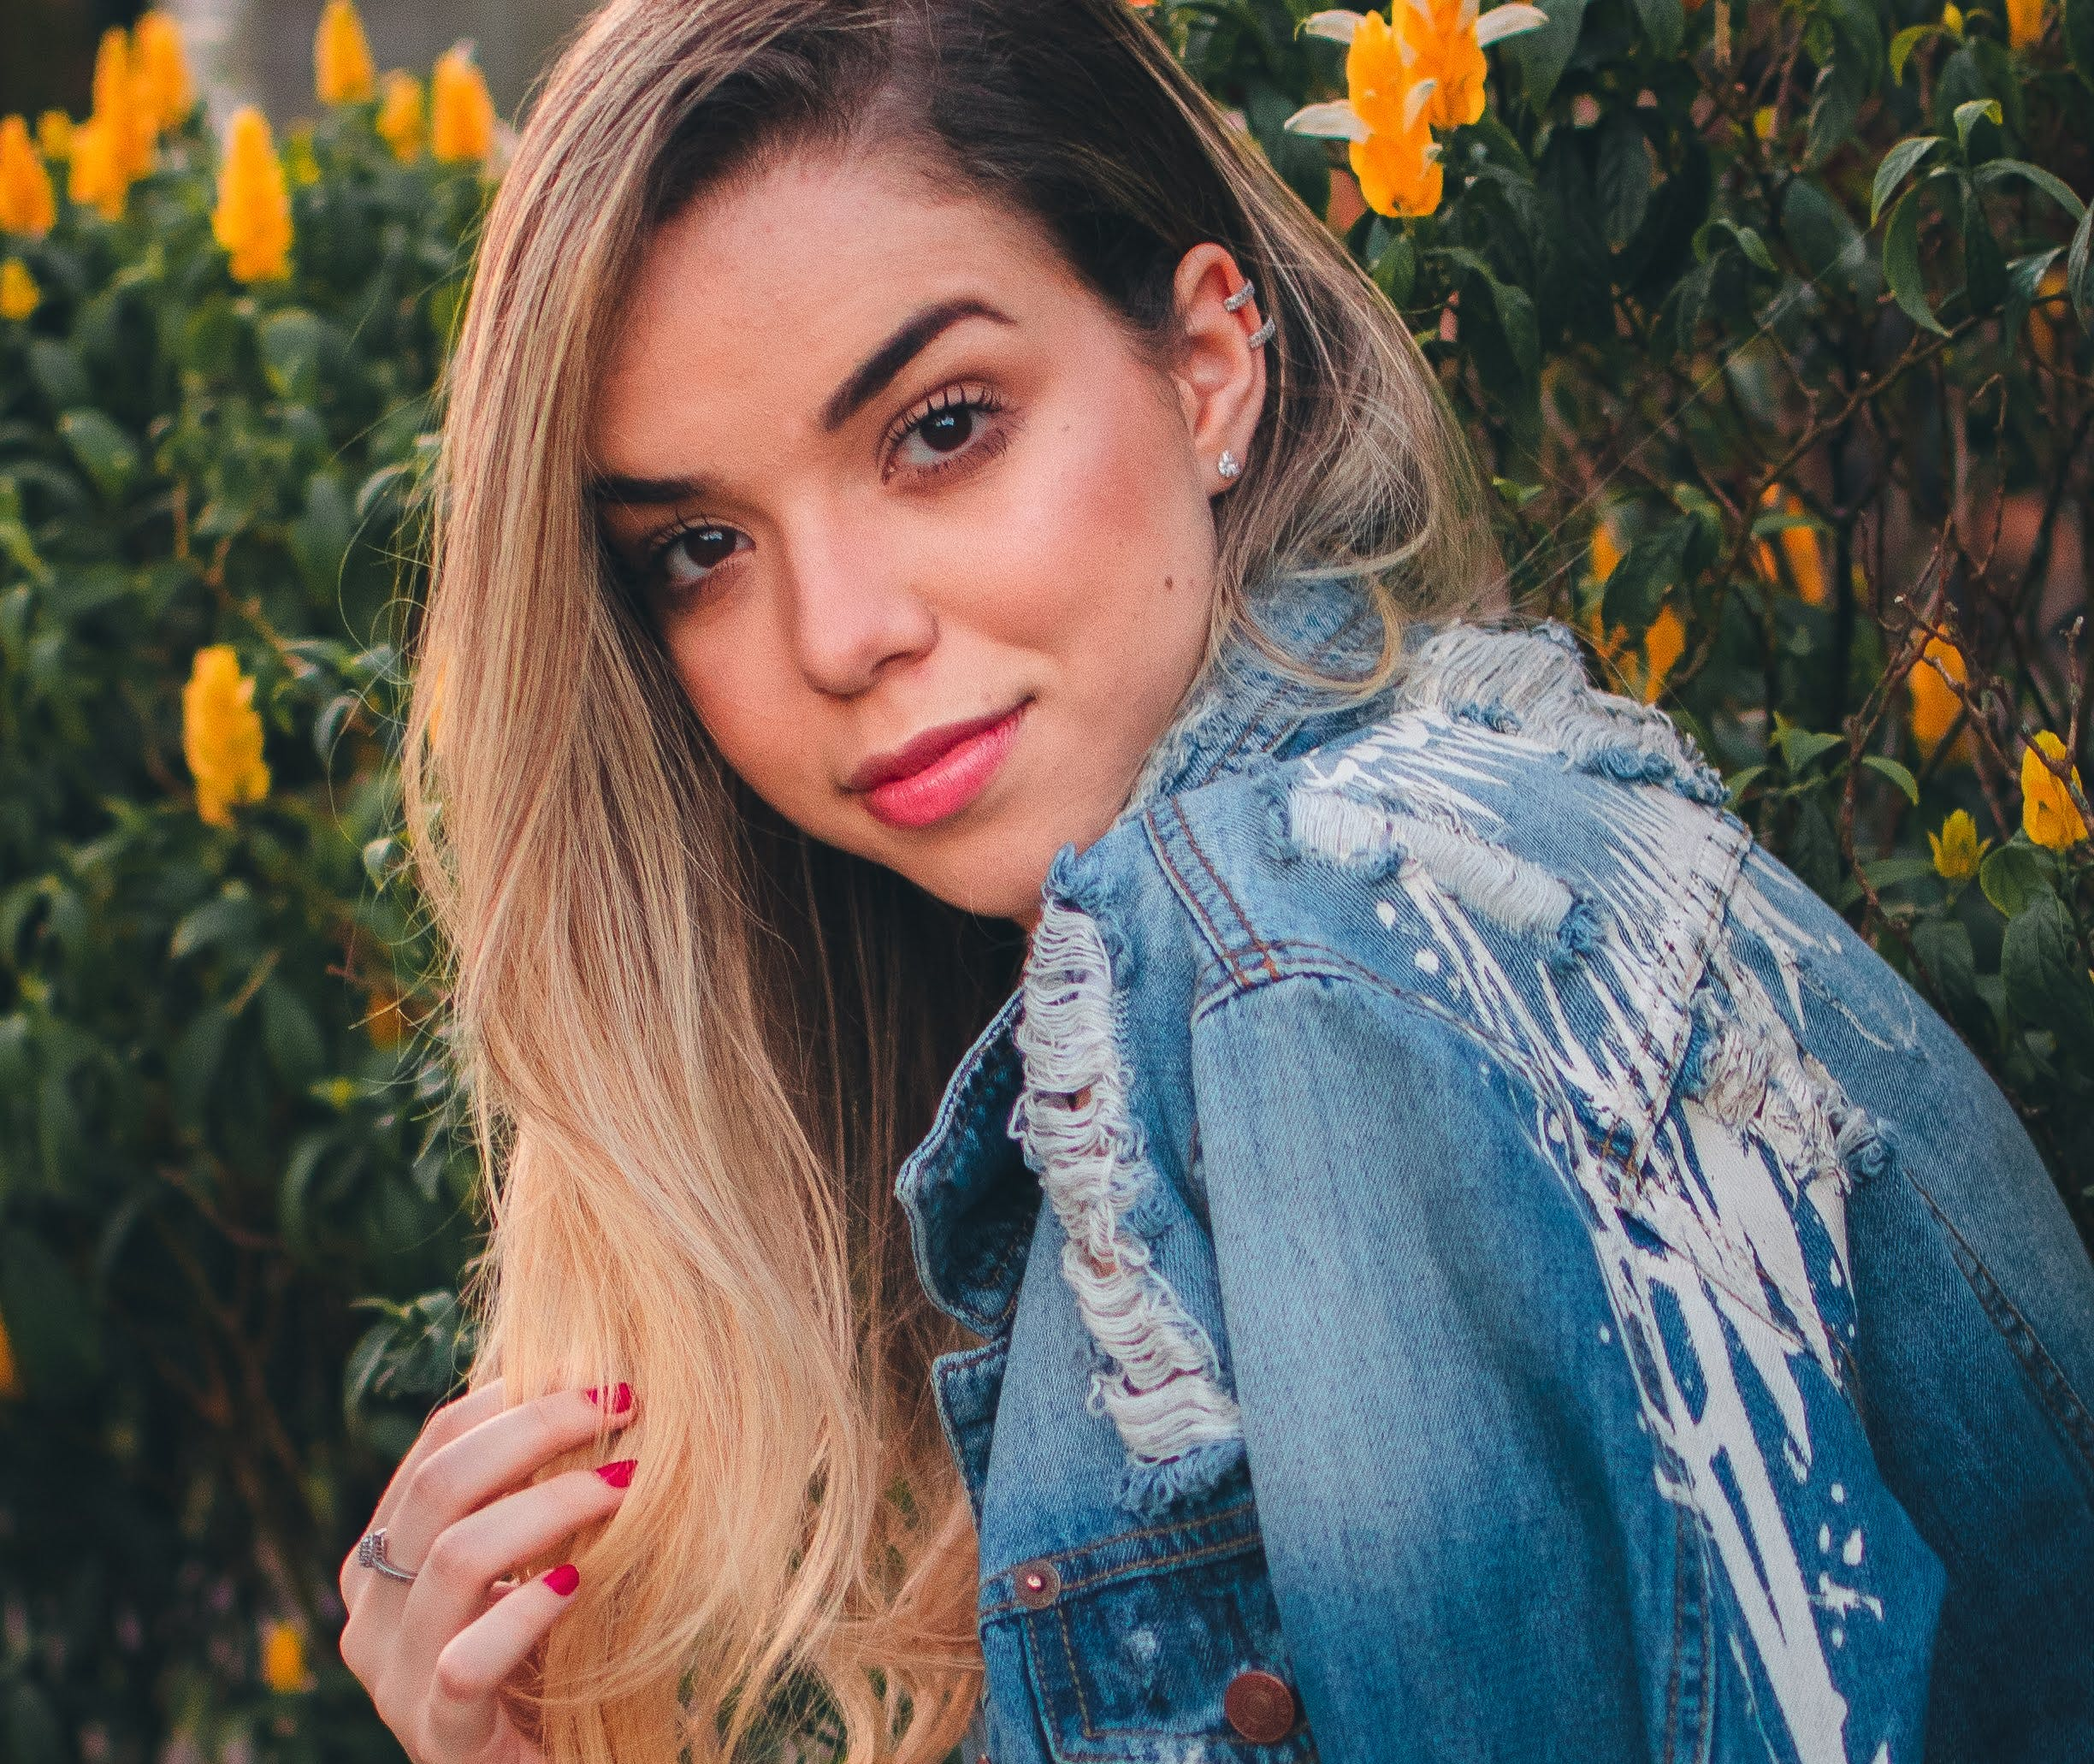 Woman Wearing Blue Denim Jacket Posing Near Yellow Petaled Flowers